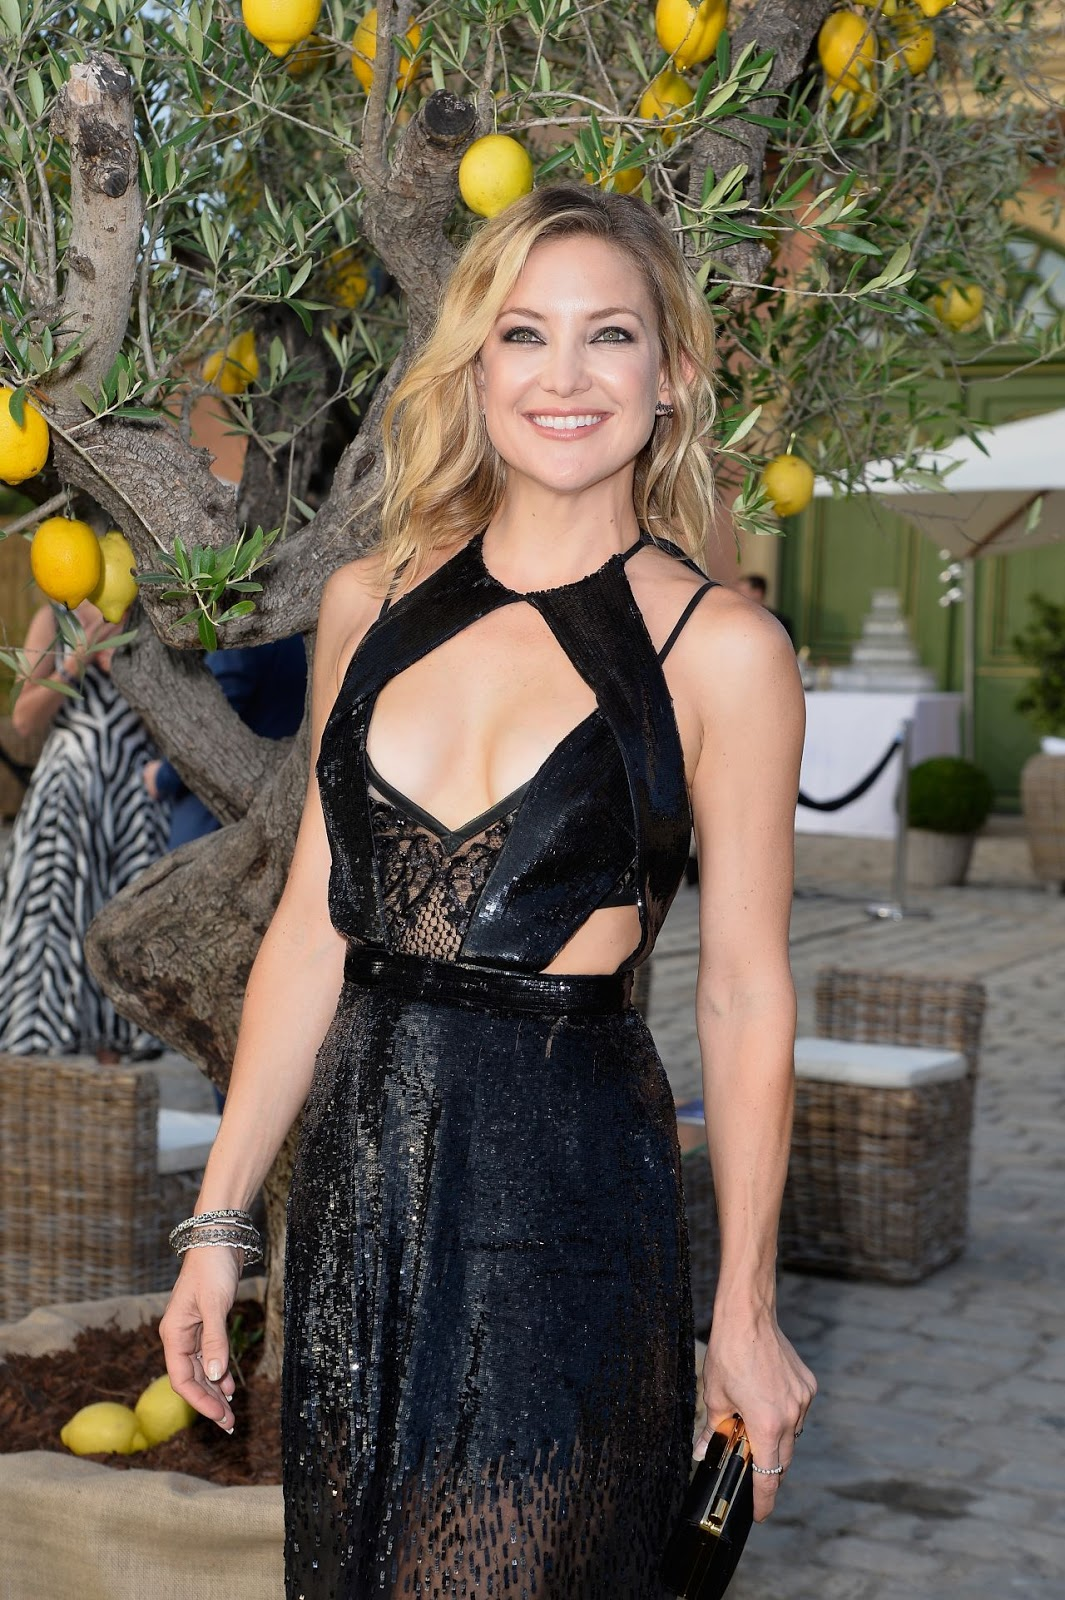 Kate Hudson in a sheer embellished gown at the 2015 Leonardo DiCaprio Foundation Gala in Saint Tropez